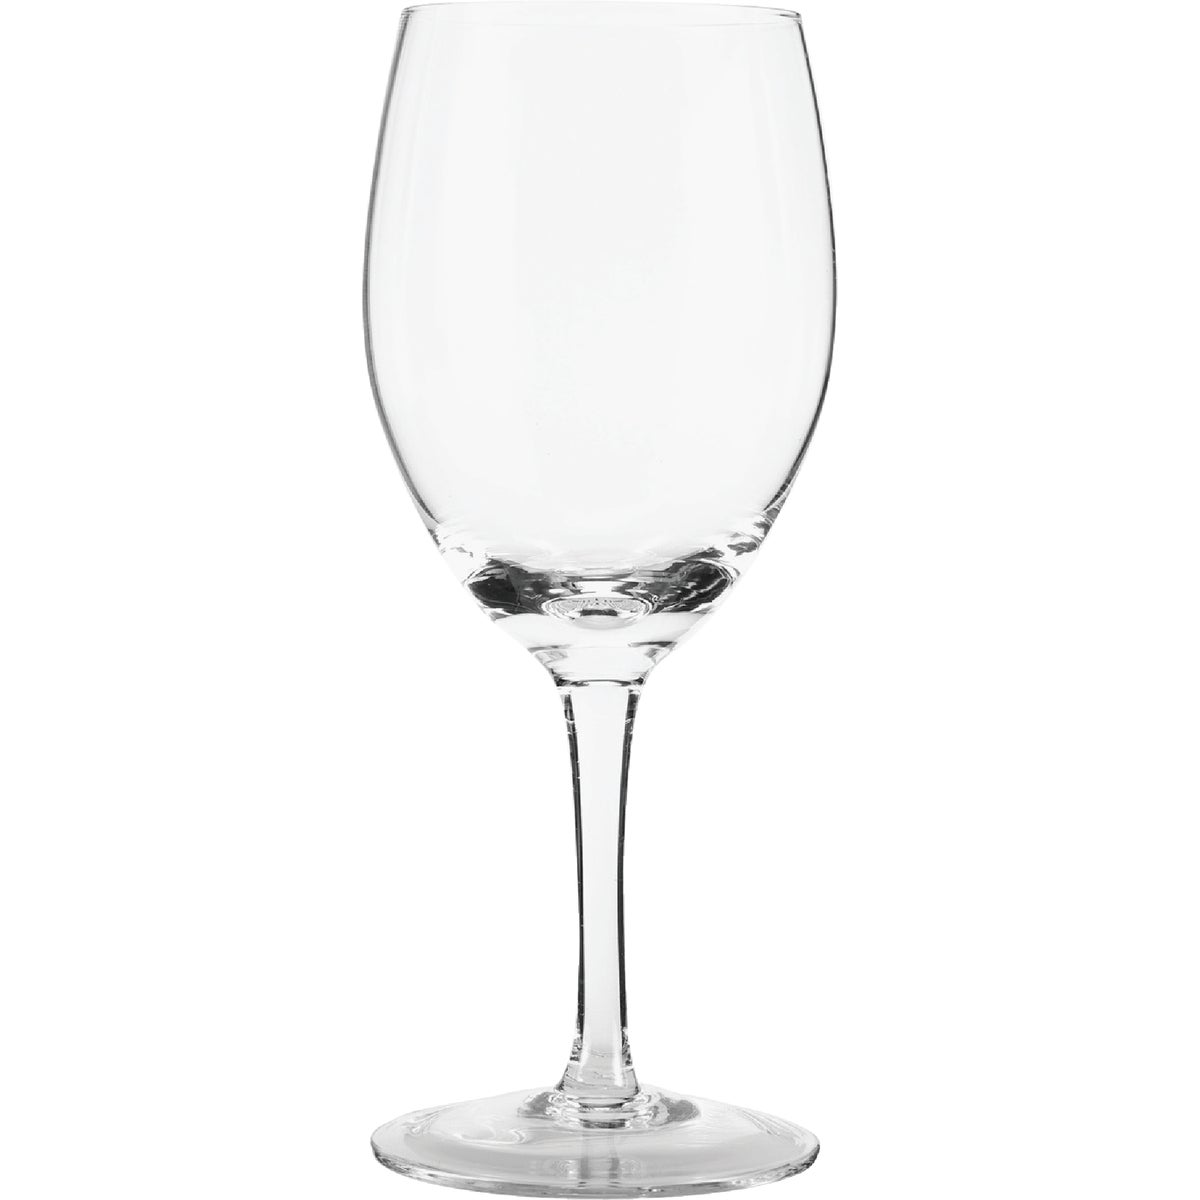 11OZ WINE GLASS - 87547L12 by Anchor Hckg Roberts